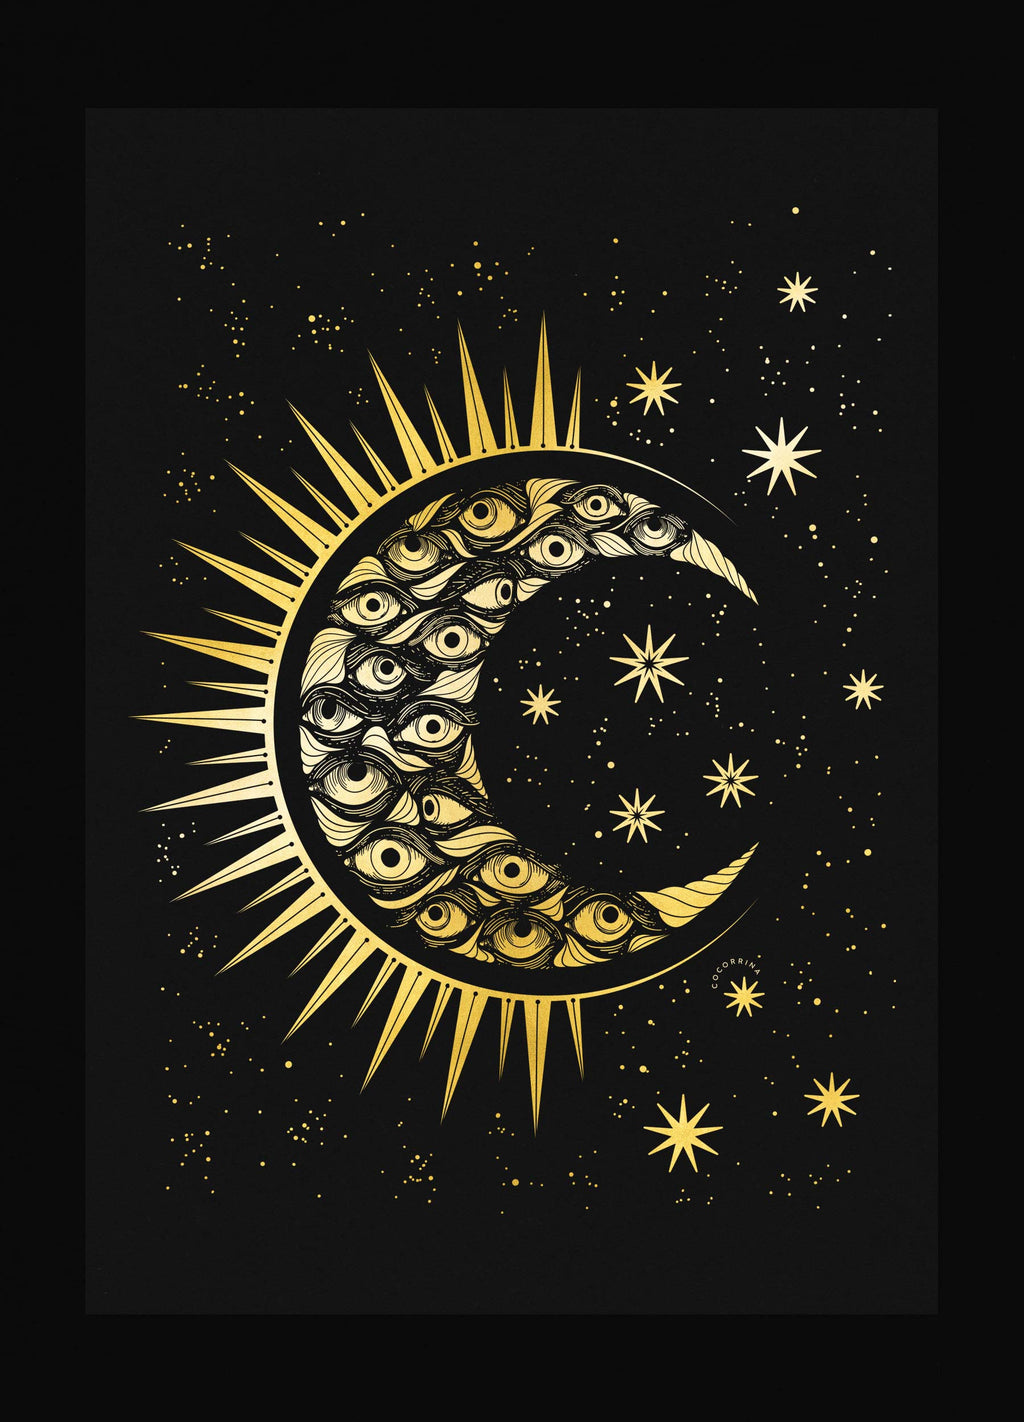 Eye Moon gold foil art print on black paper by Cocorrina & Co